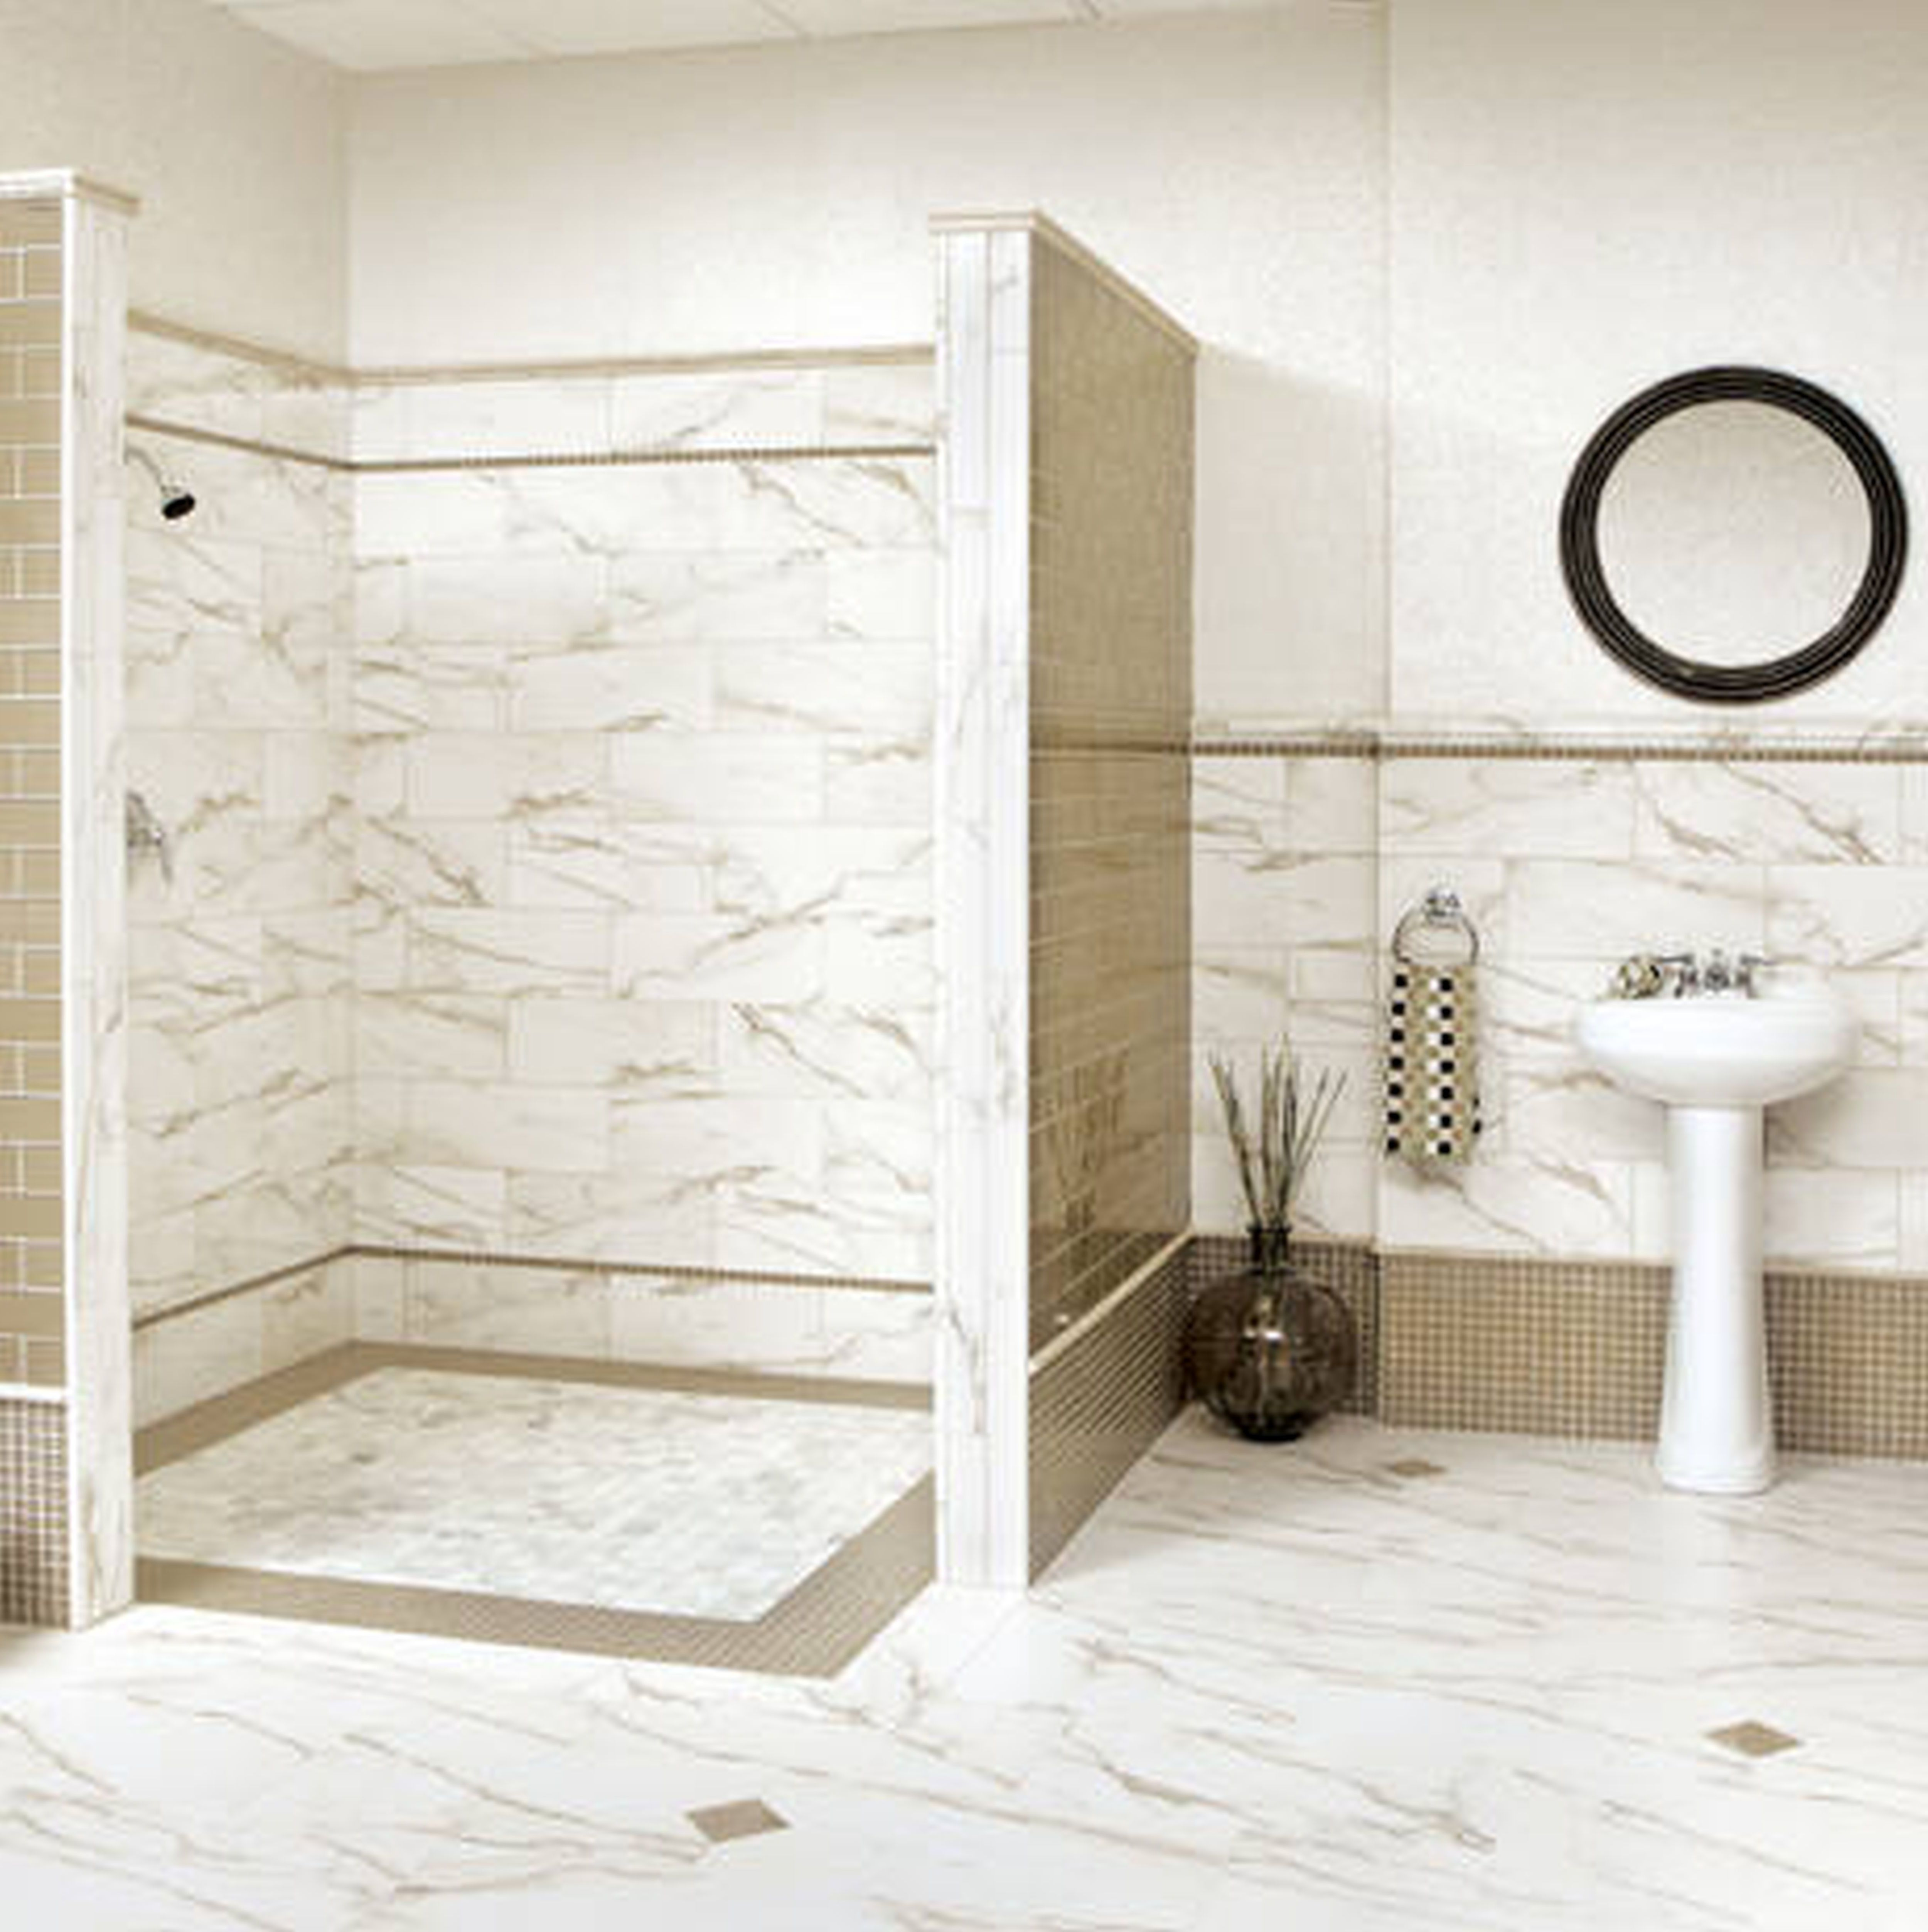 interior-white-marble-bathroom-tile-wall-connected-by-white-washstand-and-round-black-wooden-mirror-on-the-wall-interesting-bathroom-tile-designs-for-small-bathrooms-brings-pleasing-nuance